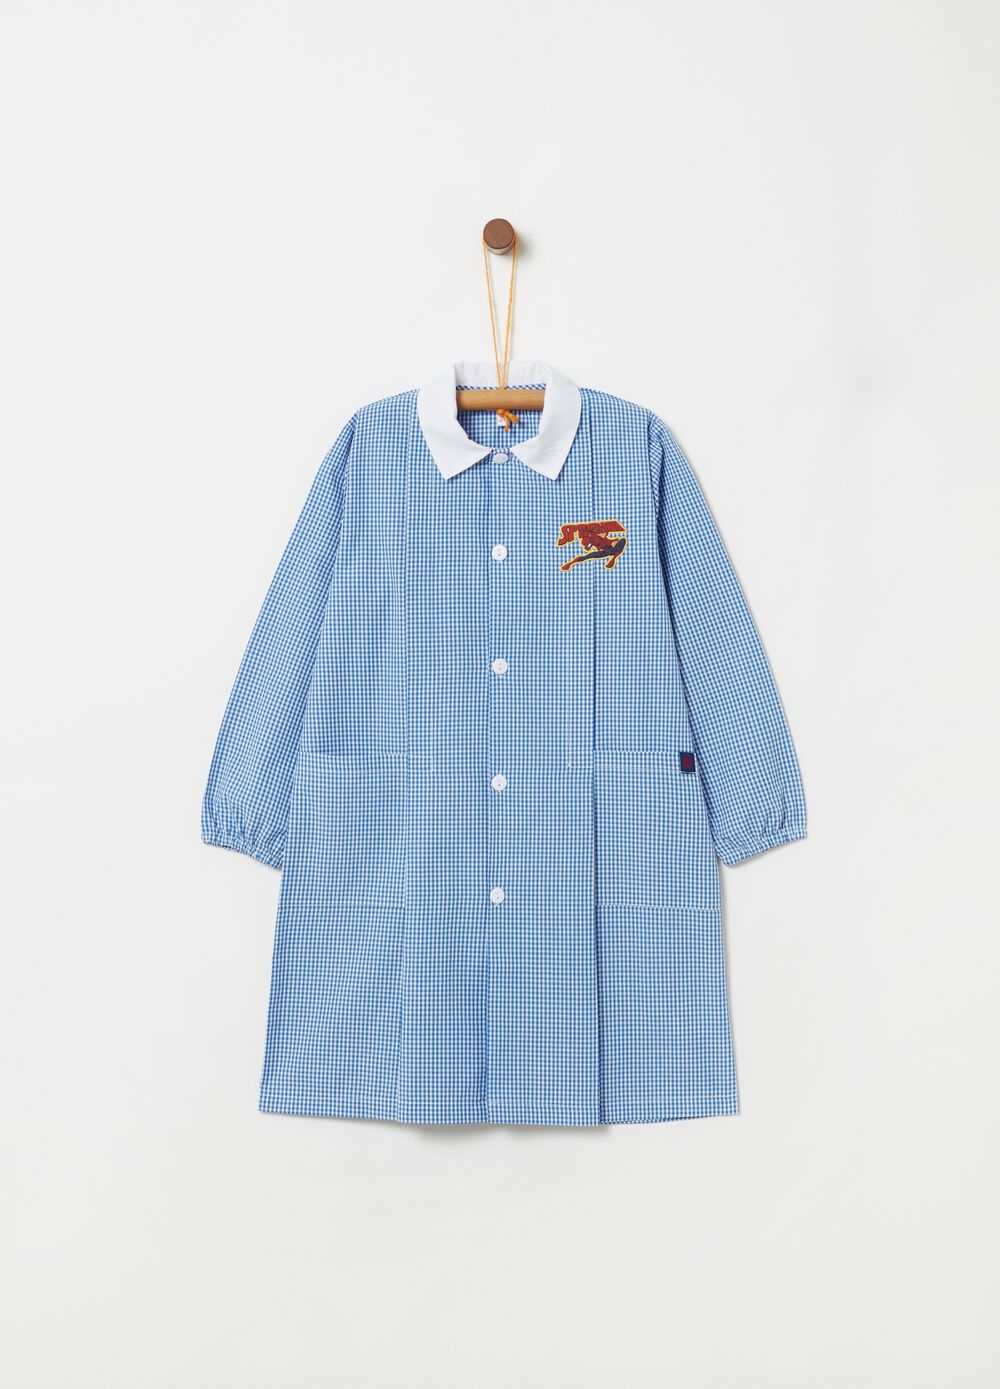 School smock with Spiderman embroidery and pattern